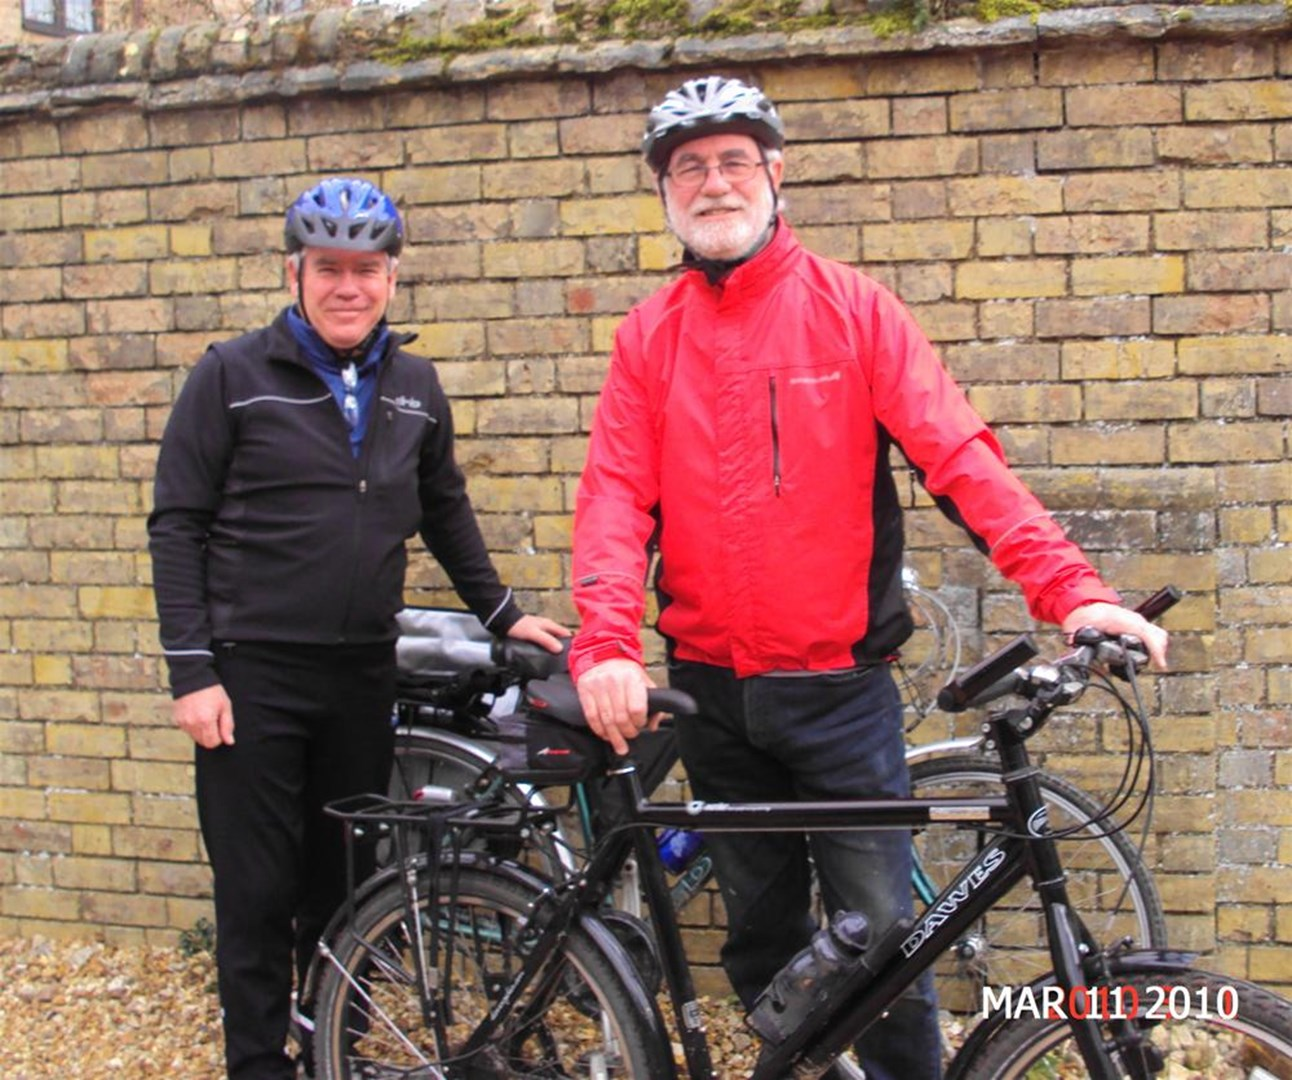 Eric Fidler is fundraising for Teenage Cancer Trust